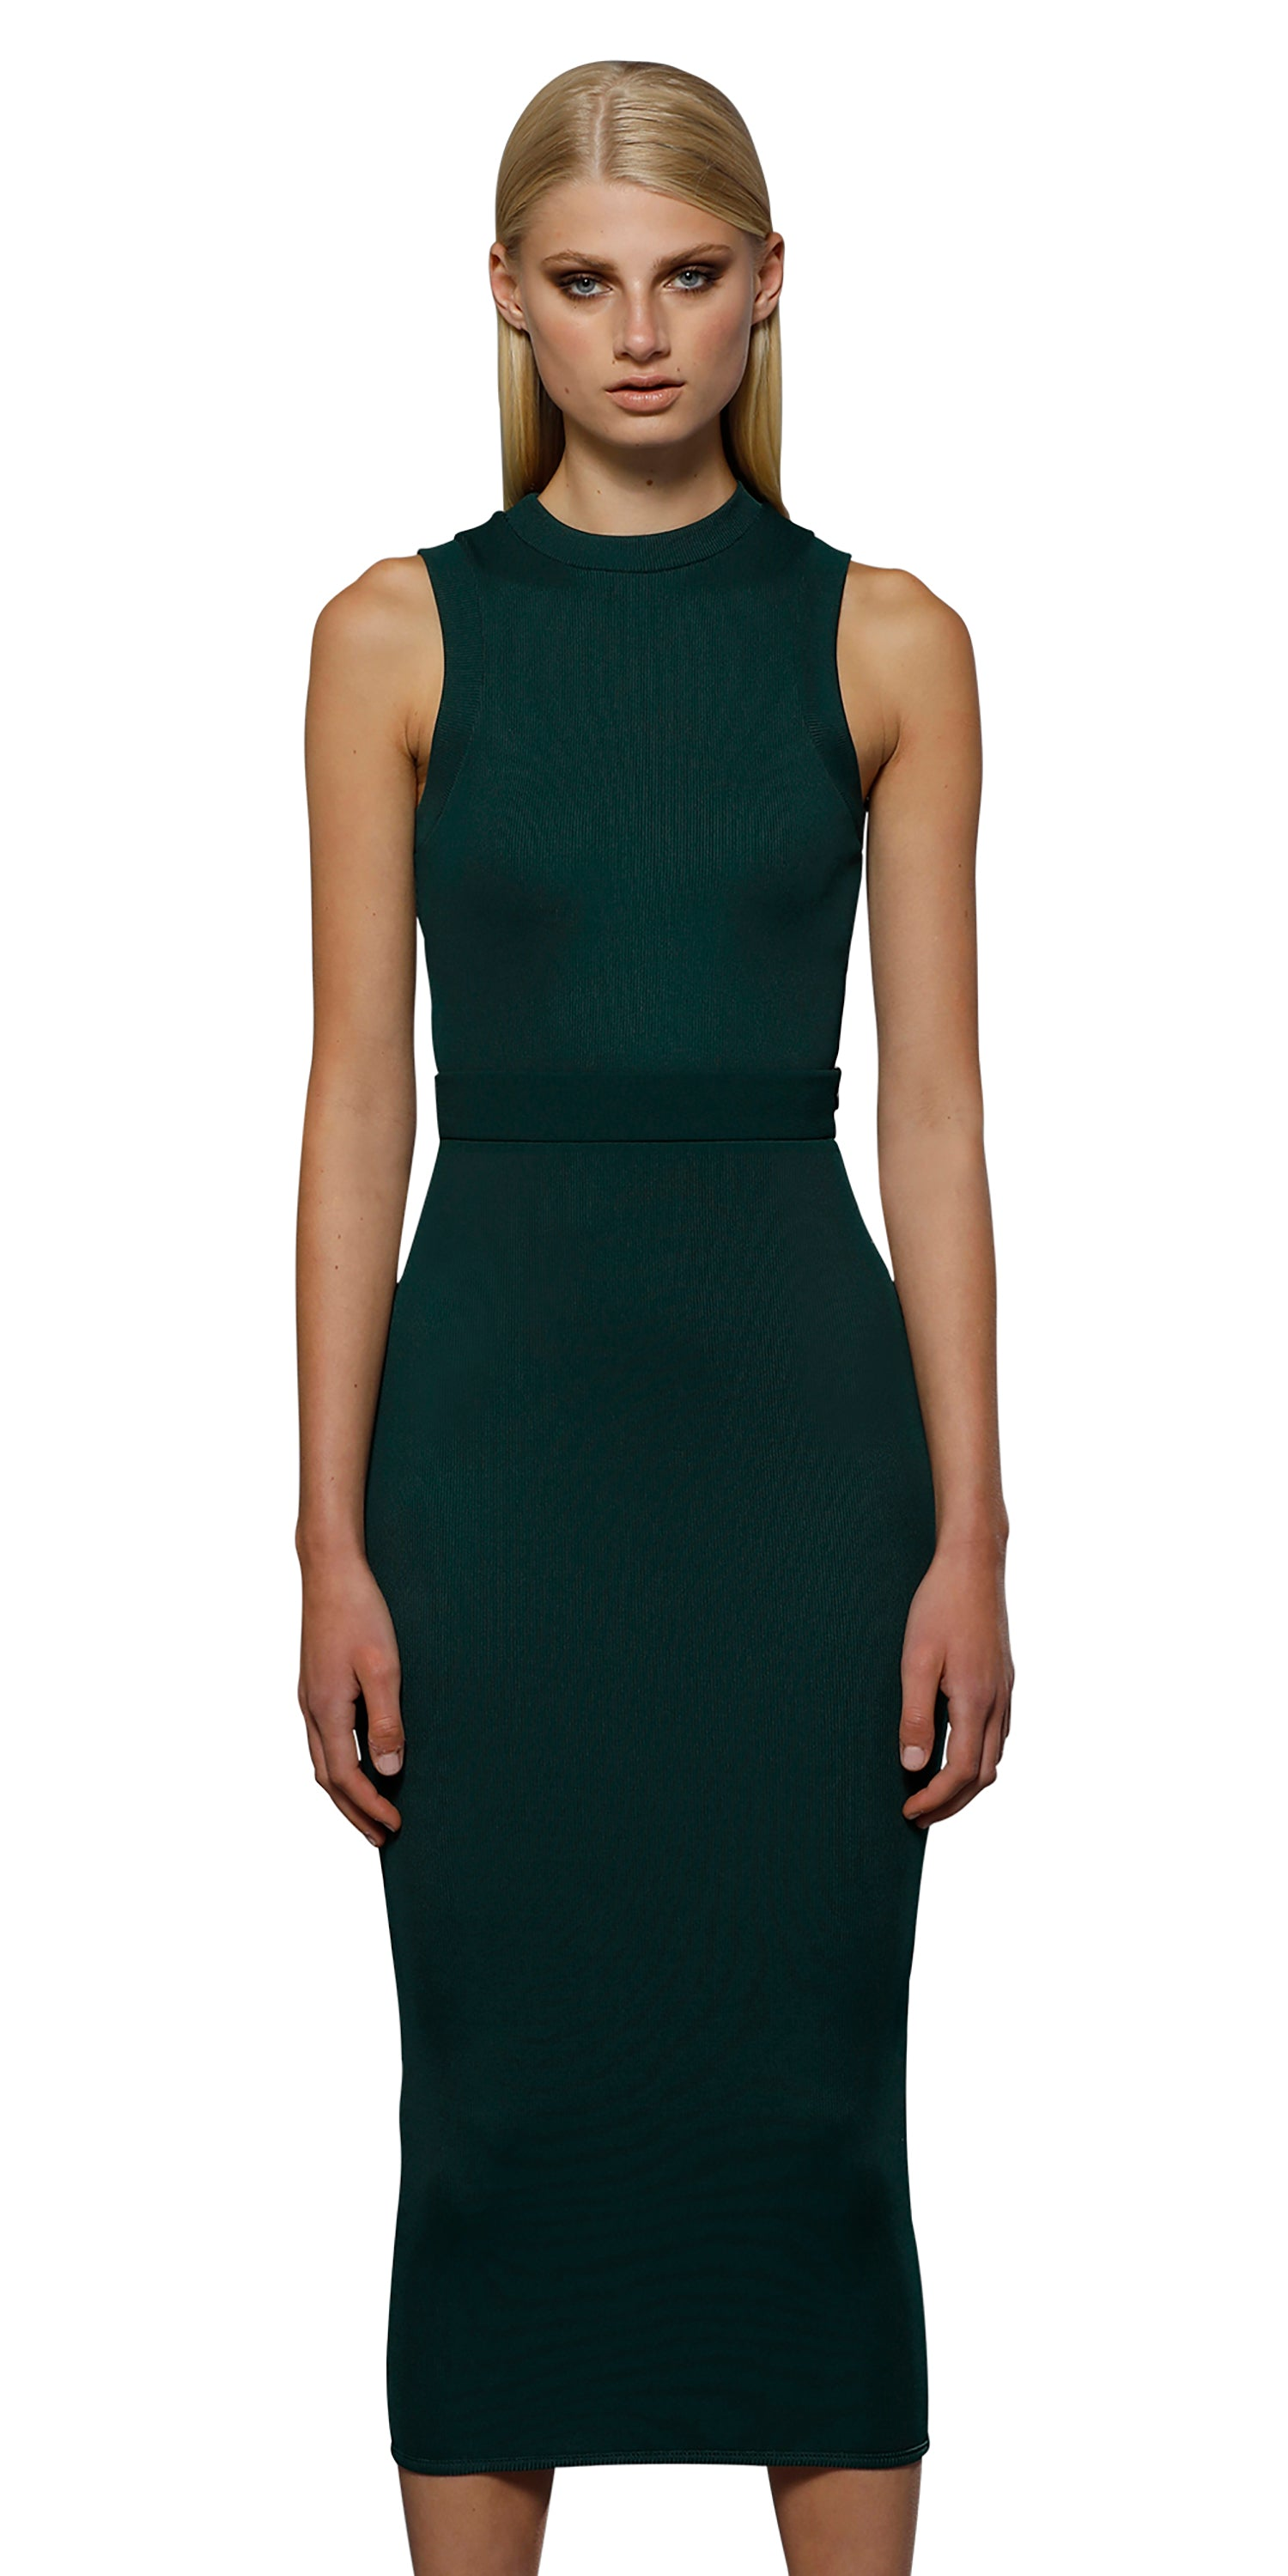 Racer Ribbed Top - Emerald